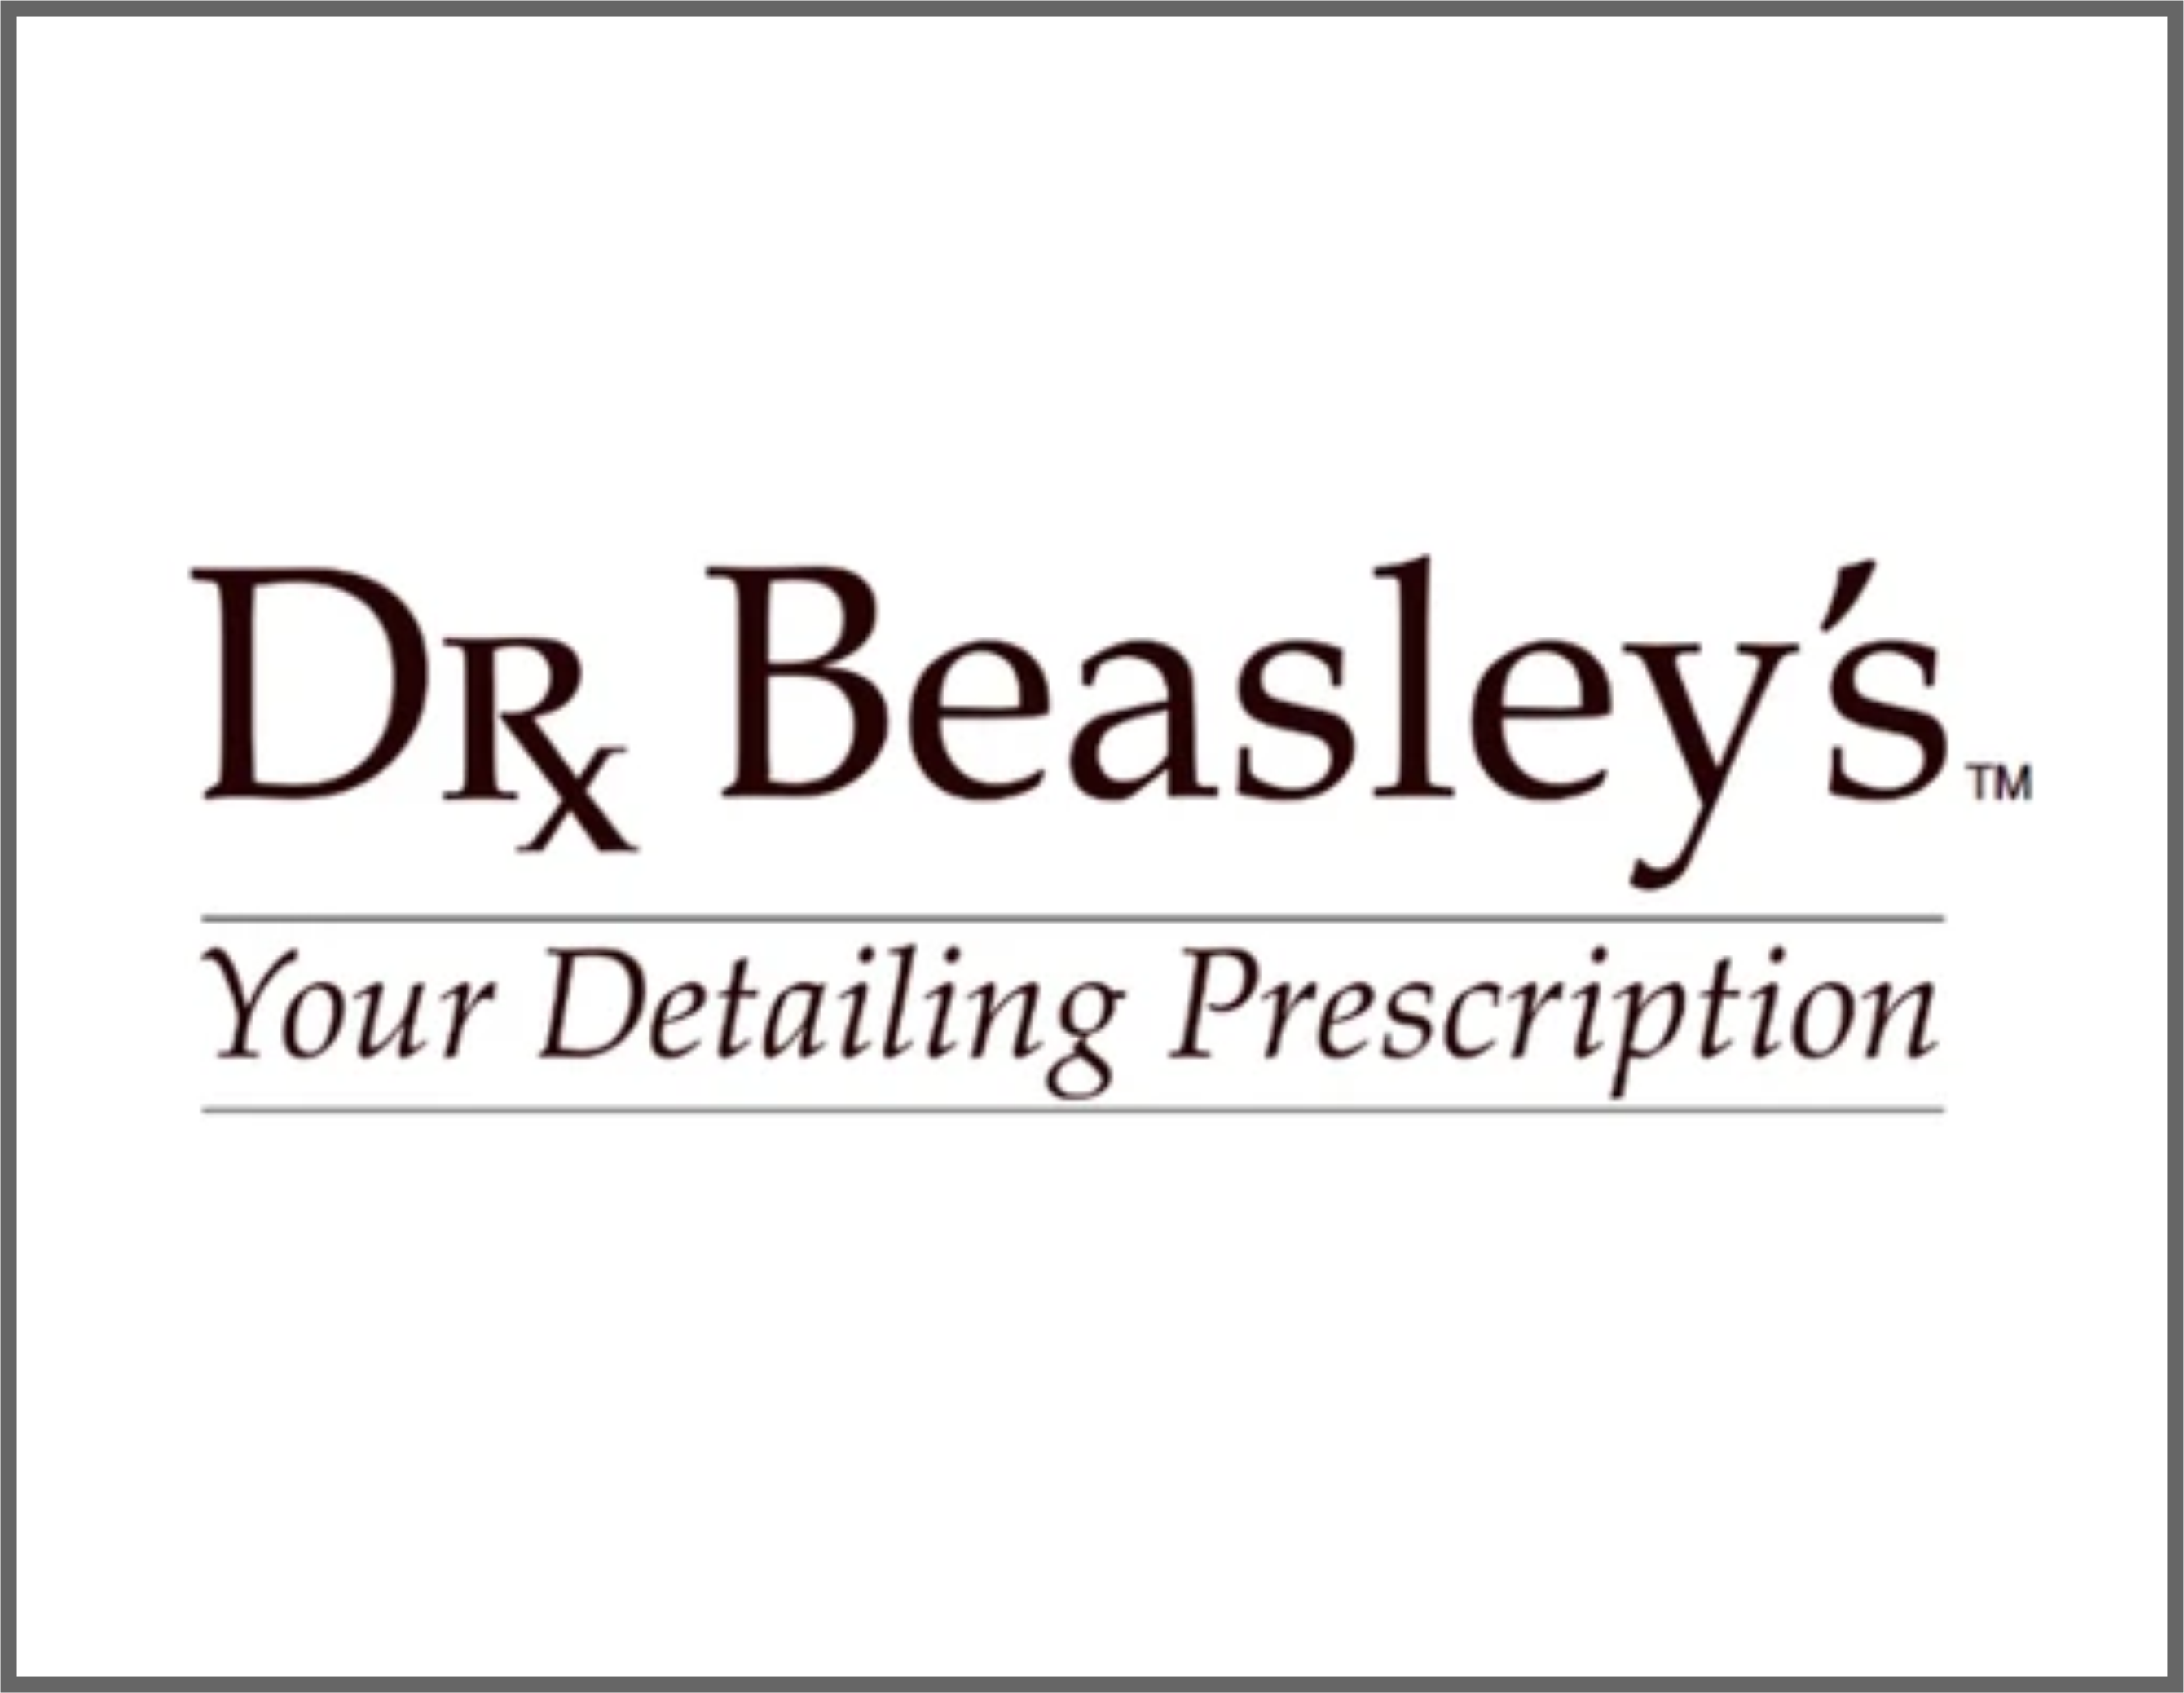 Dr Beasley's detailing products